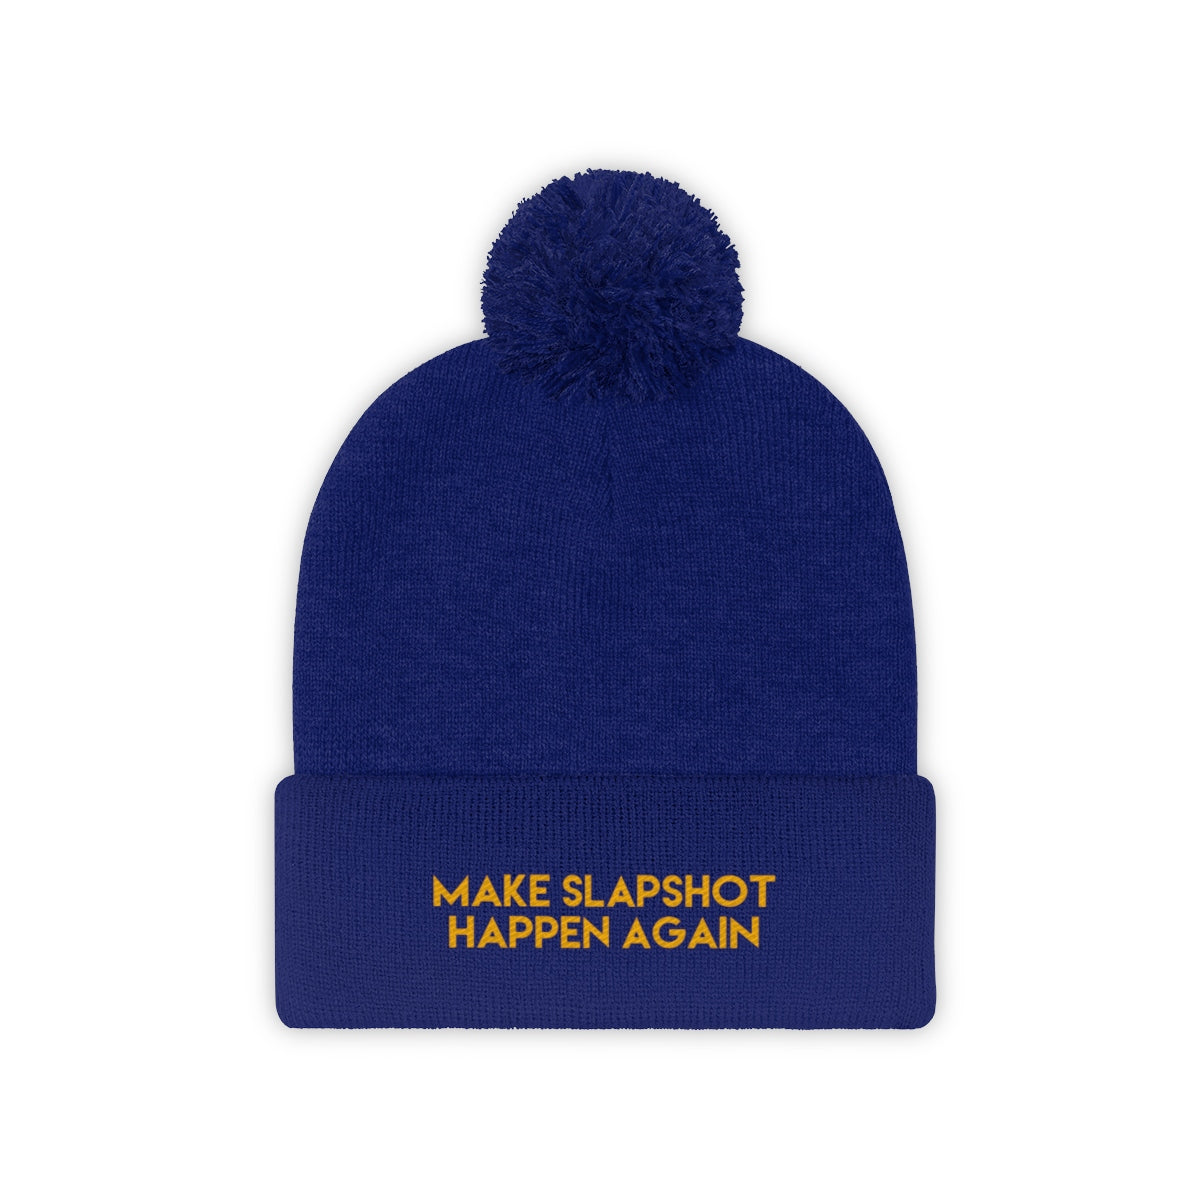 Make Slapshot Happen Again Pom Pom Beanie